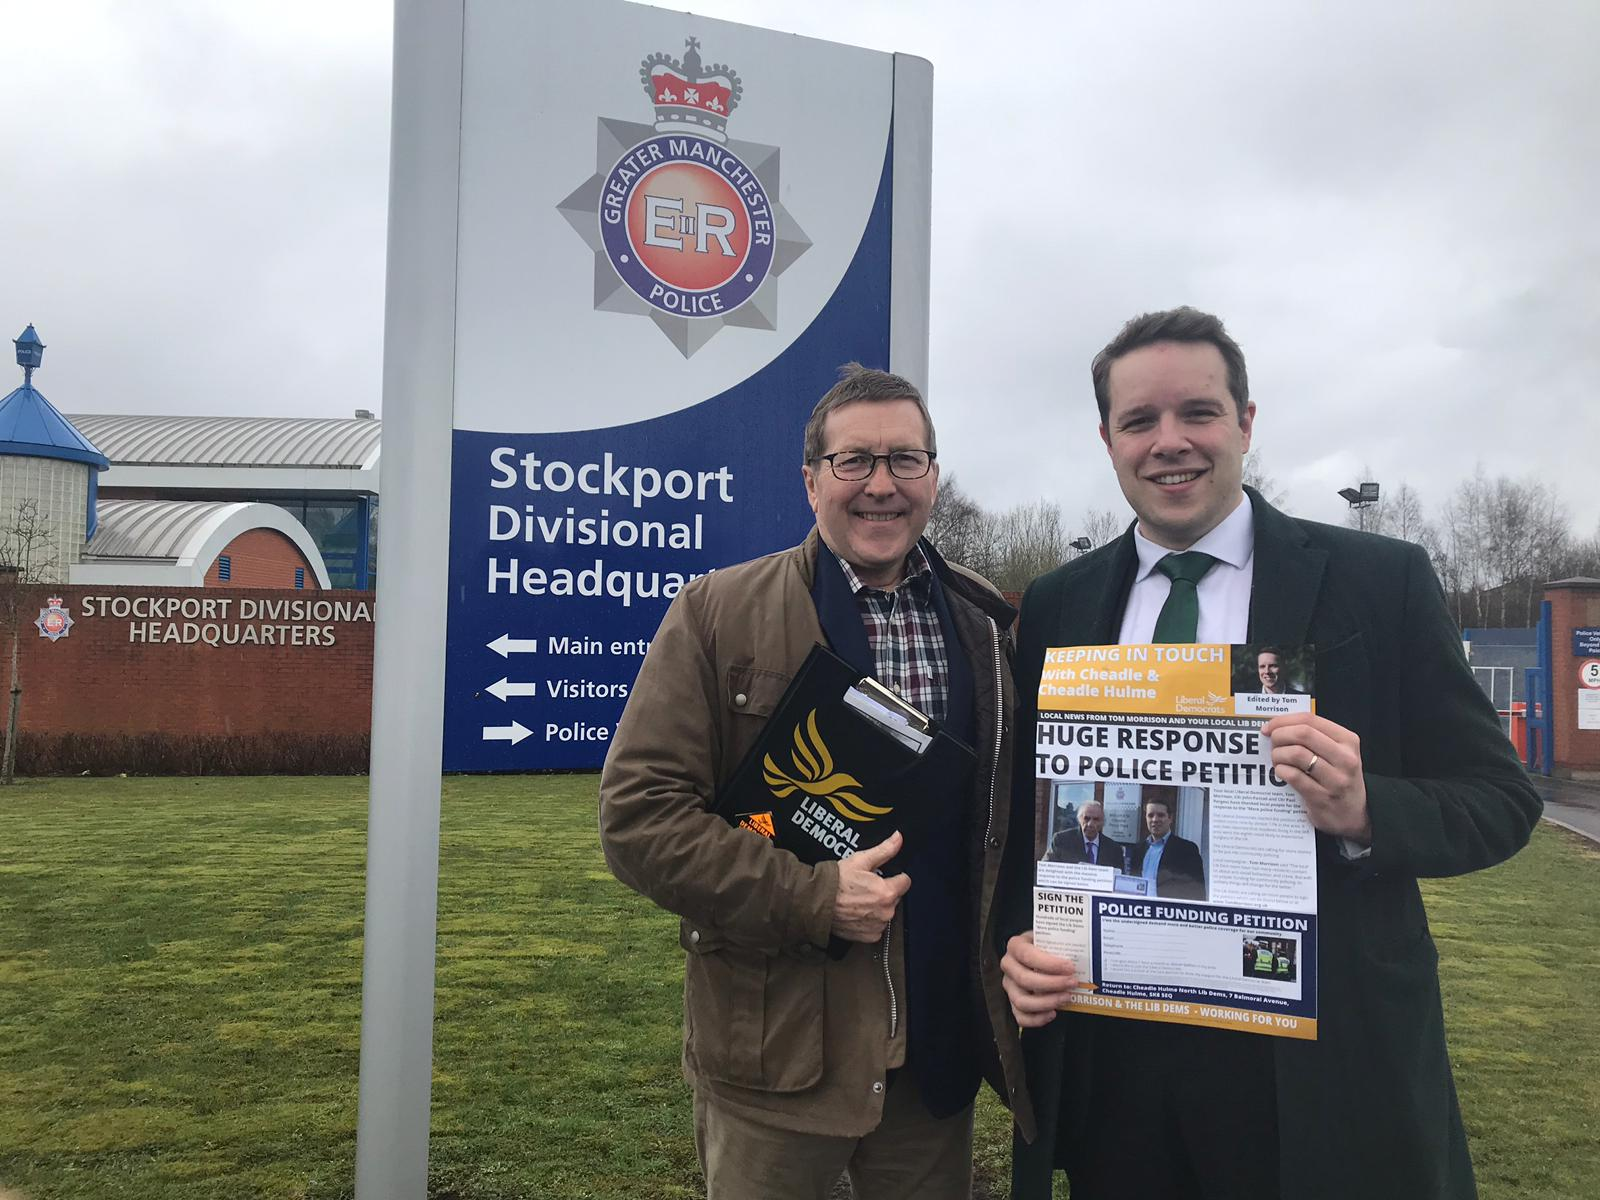 Tom Morrison and Mark Hunter with crime petition